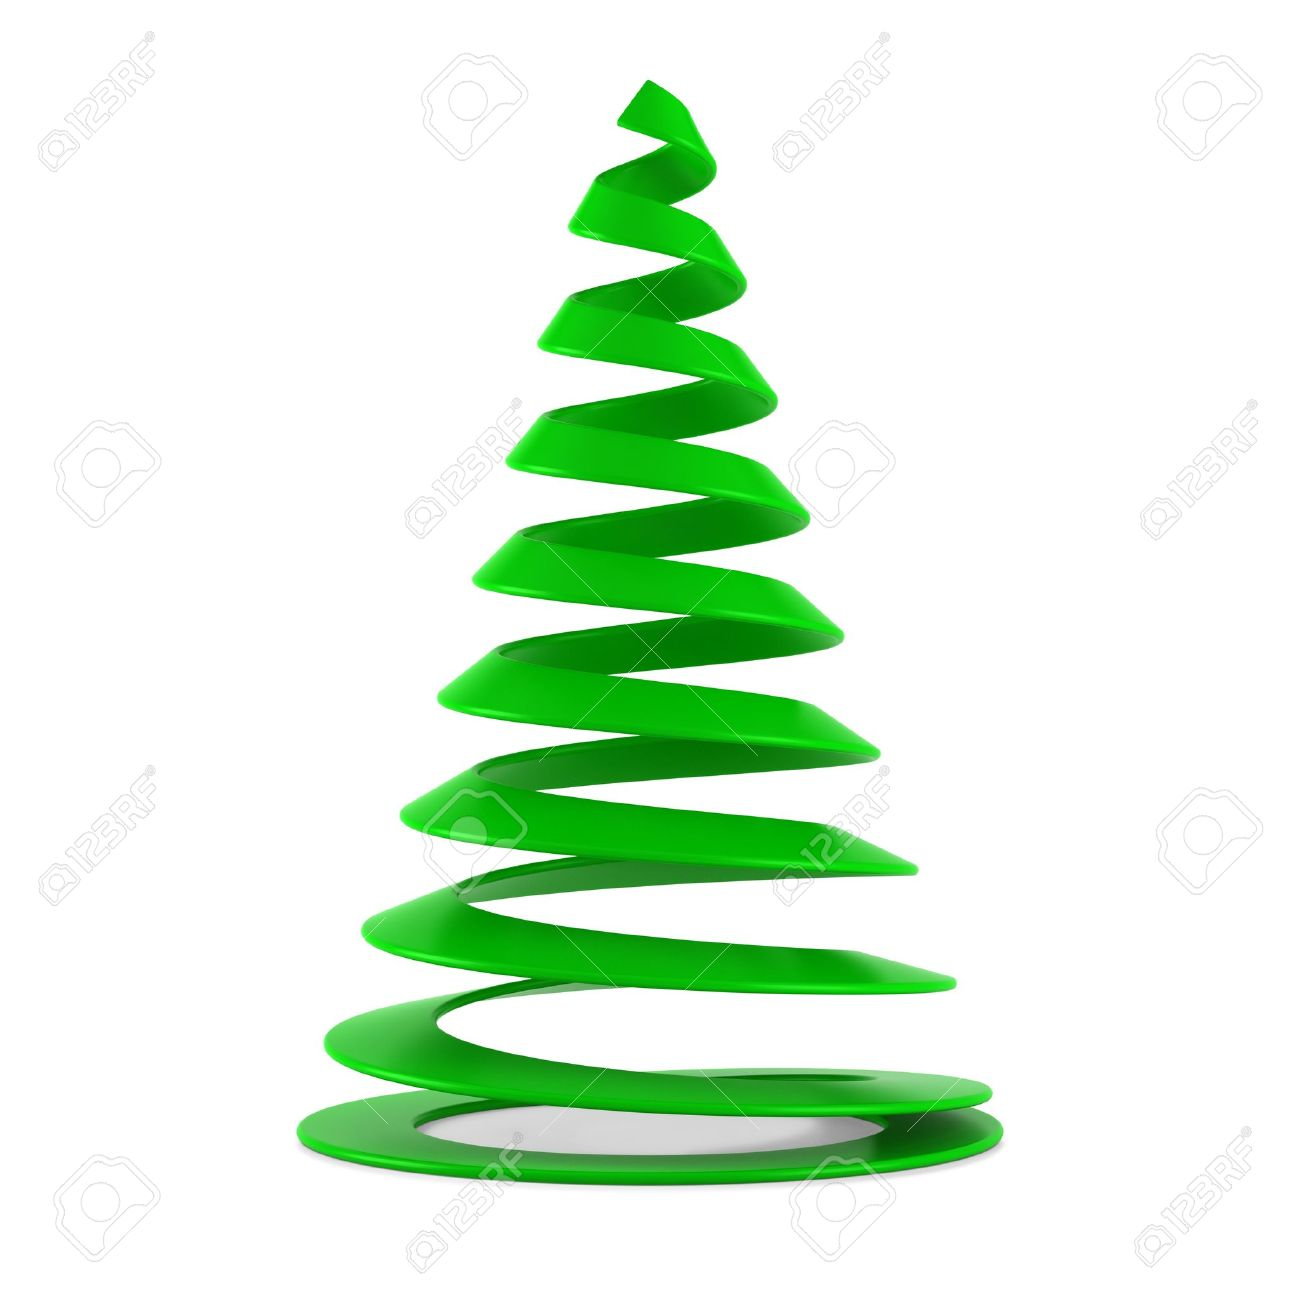 Plastic Christmas Tree.Stylized Christmas Tree In Green Plastic Isolated On White Background